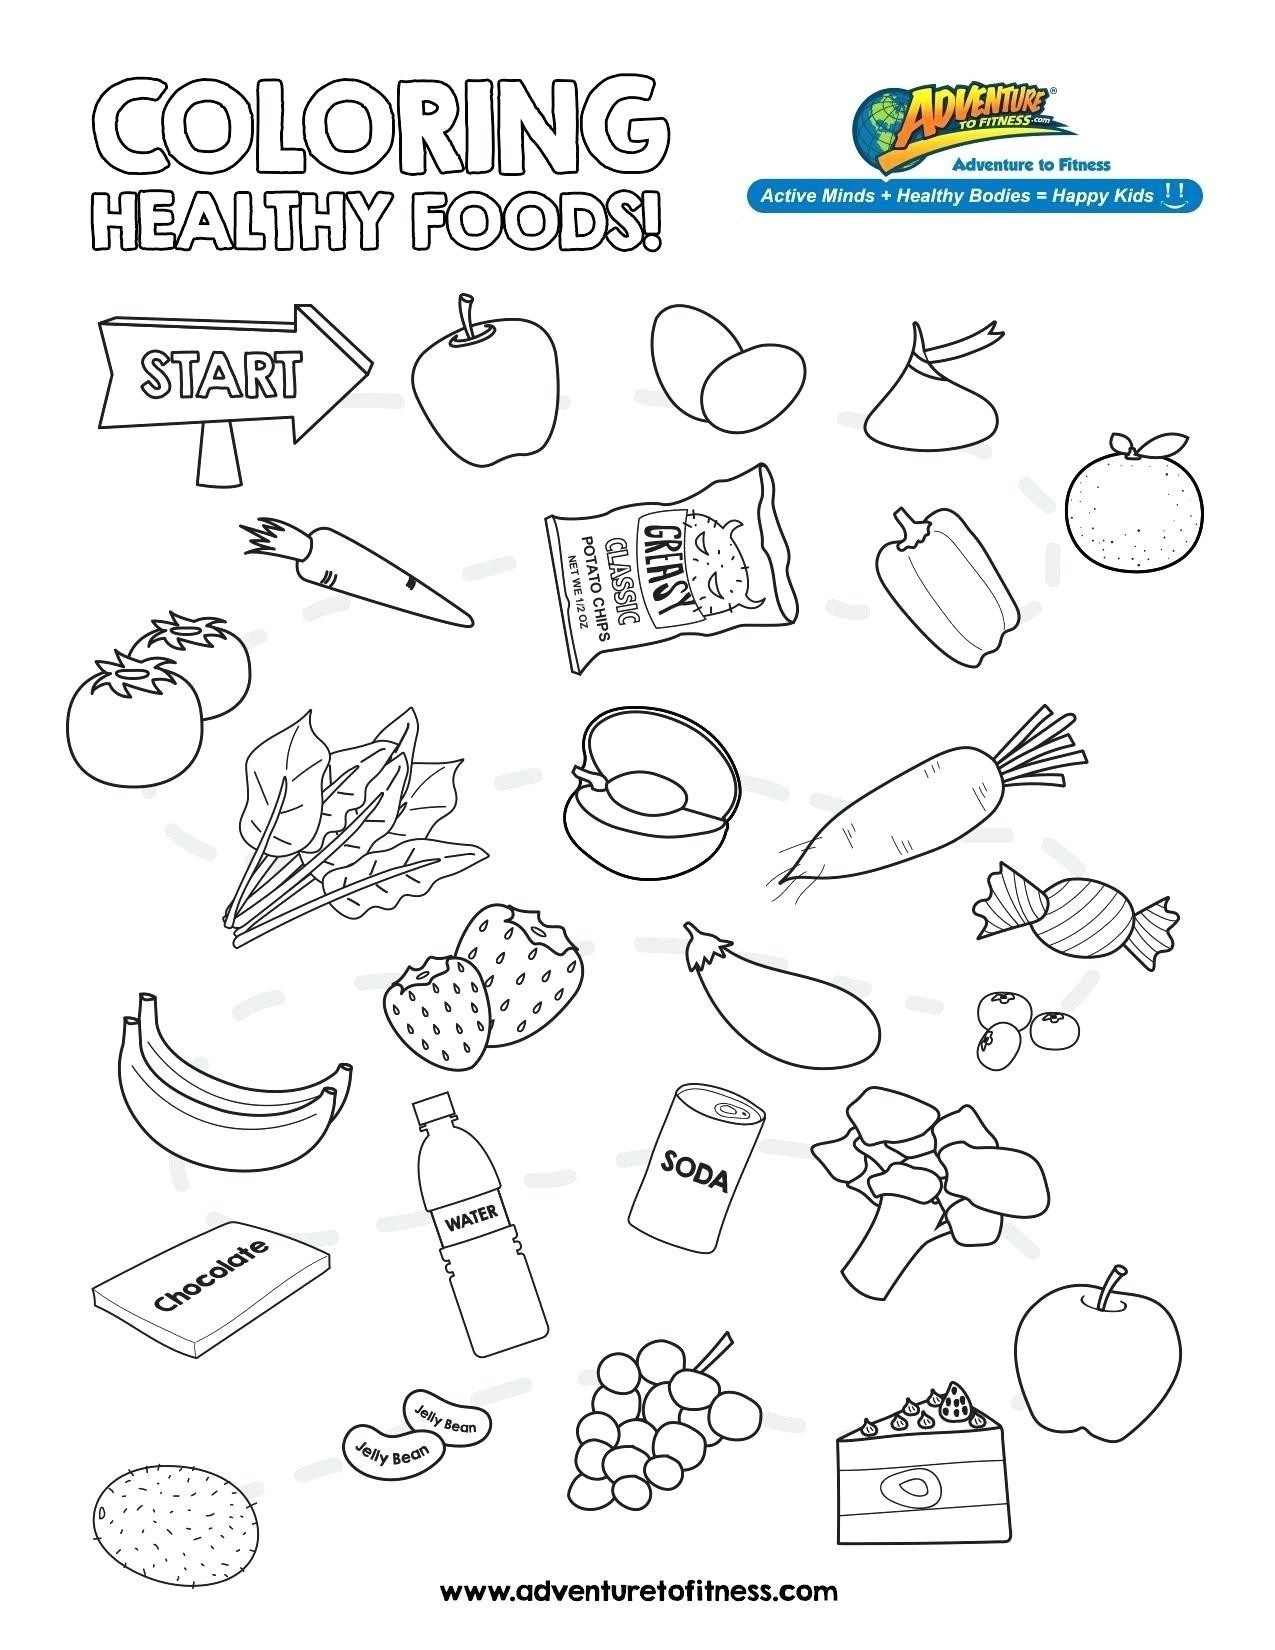 Pretty Photo Of Healthy Food Coloring Pages Davemelillo Com Food Coloring Pages Food Pyramid Healthy Kids